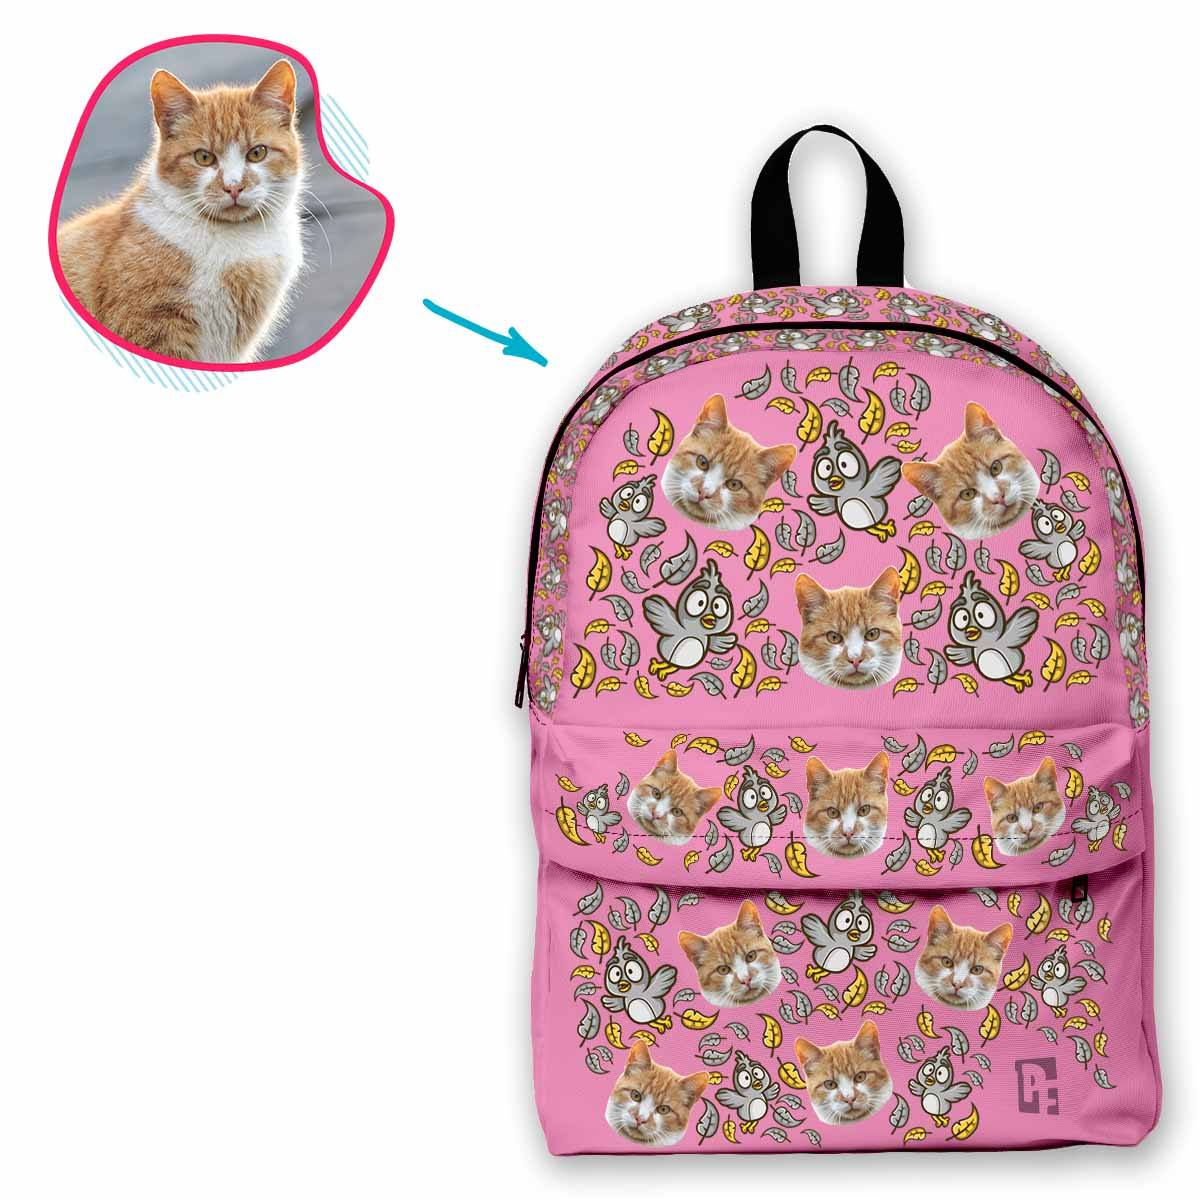 pink Bird classic backpack personalized with photo of face printed on it